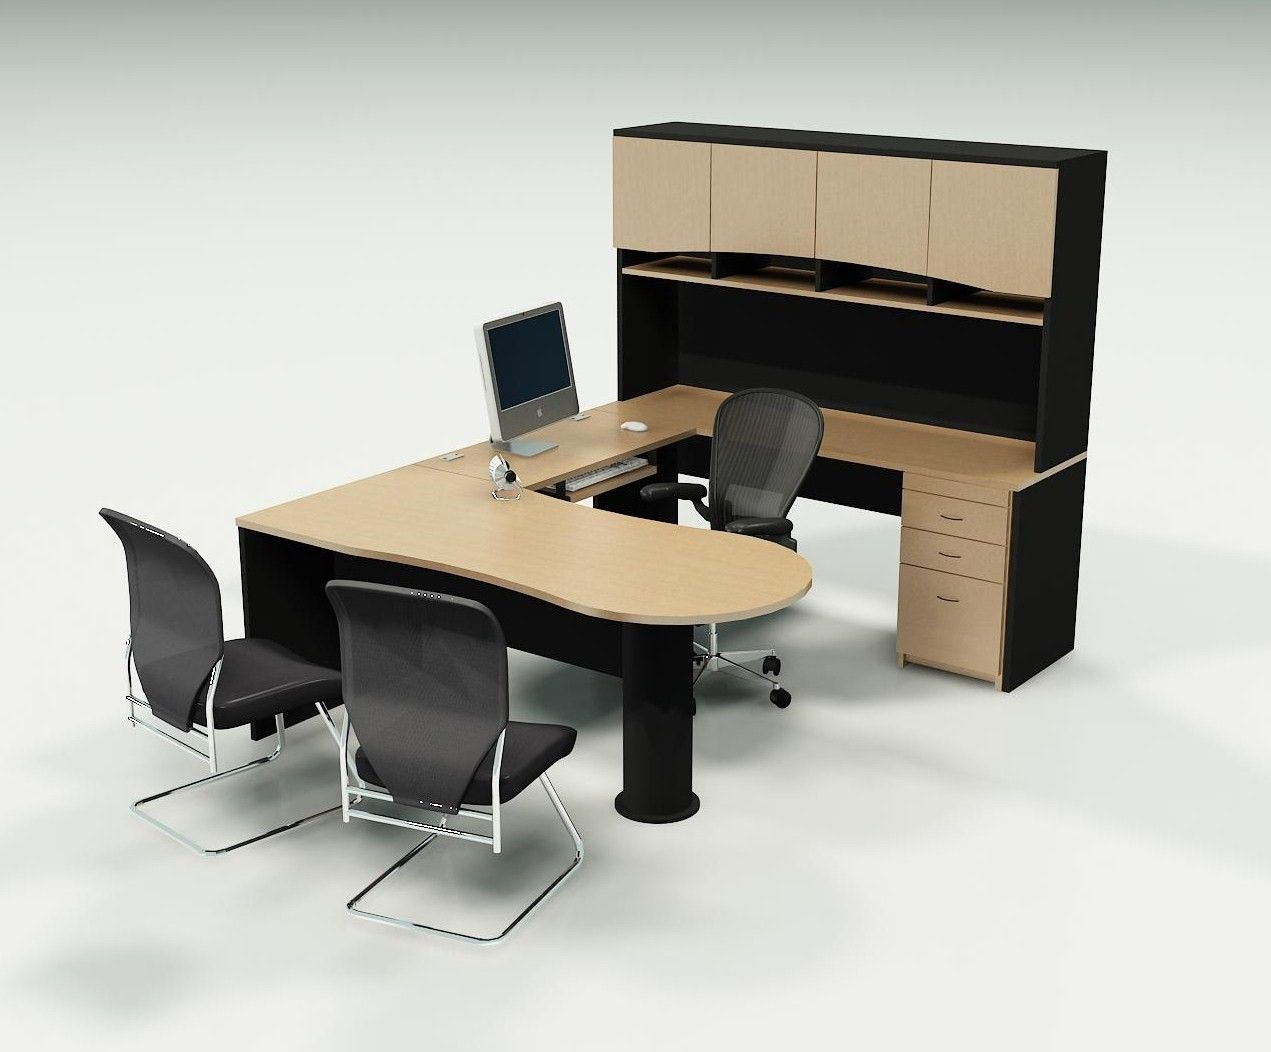 stylish office furniture 1000 images about furniture on pinterest office furniture modern offices and offices awesome modern office furniture impromodern designer